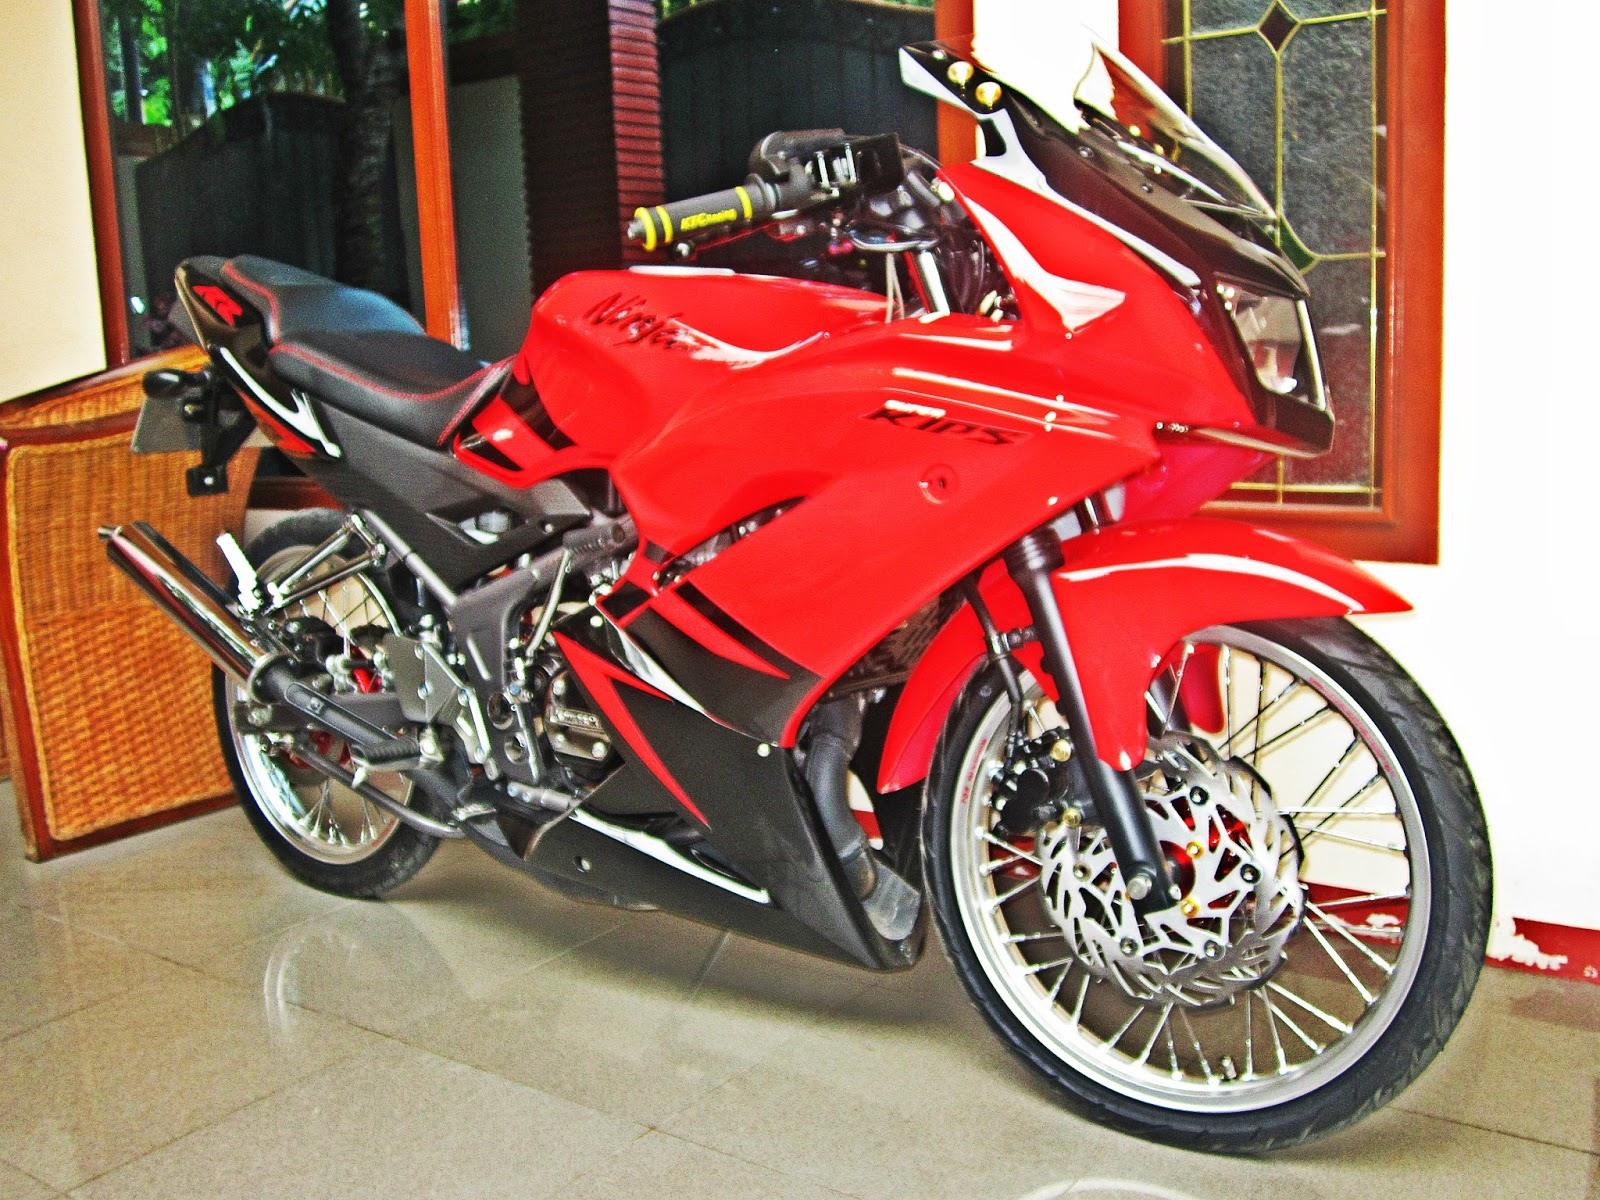 Ninja RR new Modifikasi jari-jari title=